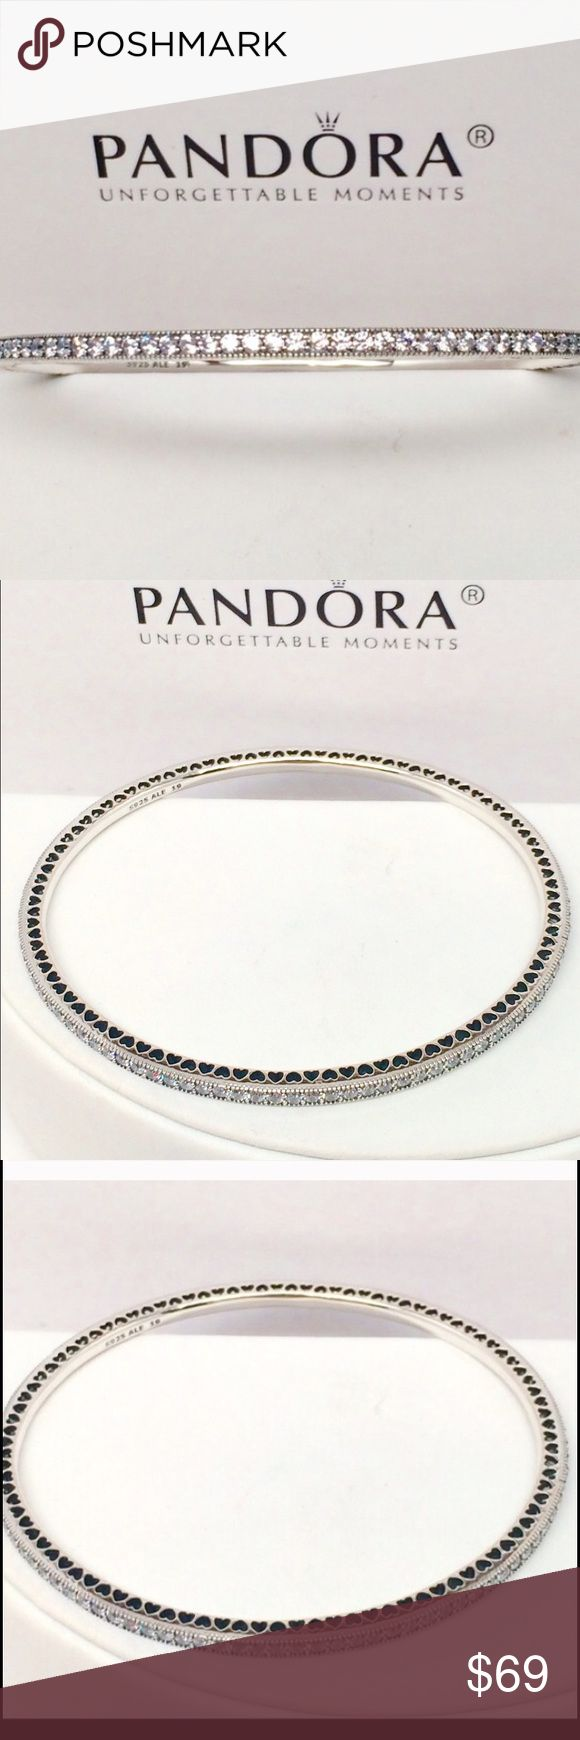 New Pandora Twinkling Bangle All Sizes This is a Brand New Authentic Pandora Bangle. Comes in A Pandora Bangle Box. No Trades. Please. All Hallmarked and properly stamped. If any questions or concerns please drop me a note. Hard Box Sold Separately. Thanks and Happy Shopping. Oh, if you need anything special just let me know and I will do my best to get you what you want. Pandora Jewelry Bracelets